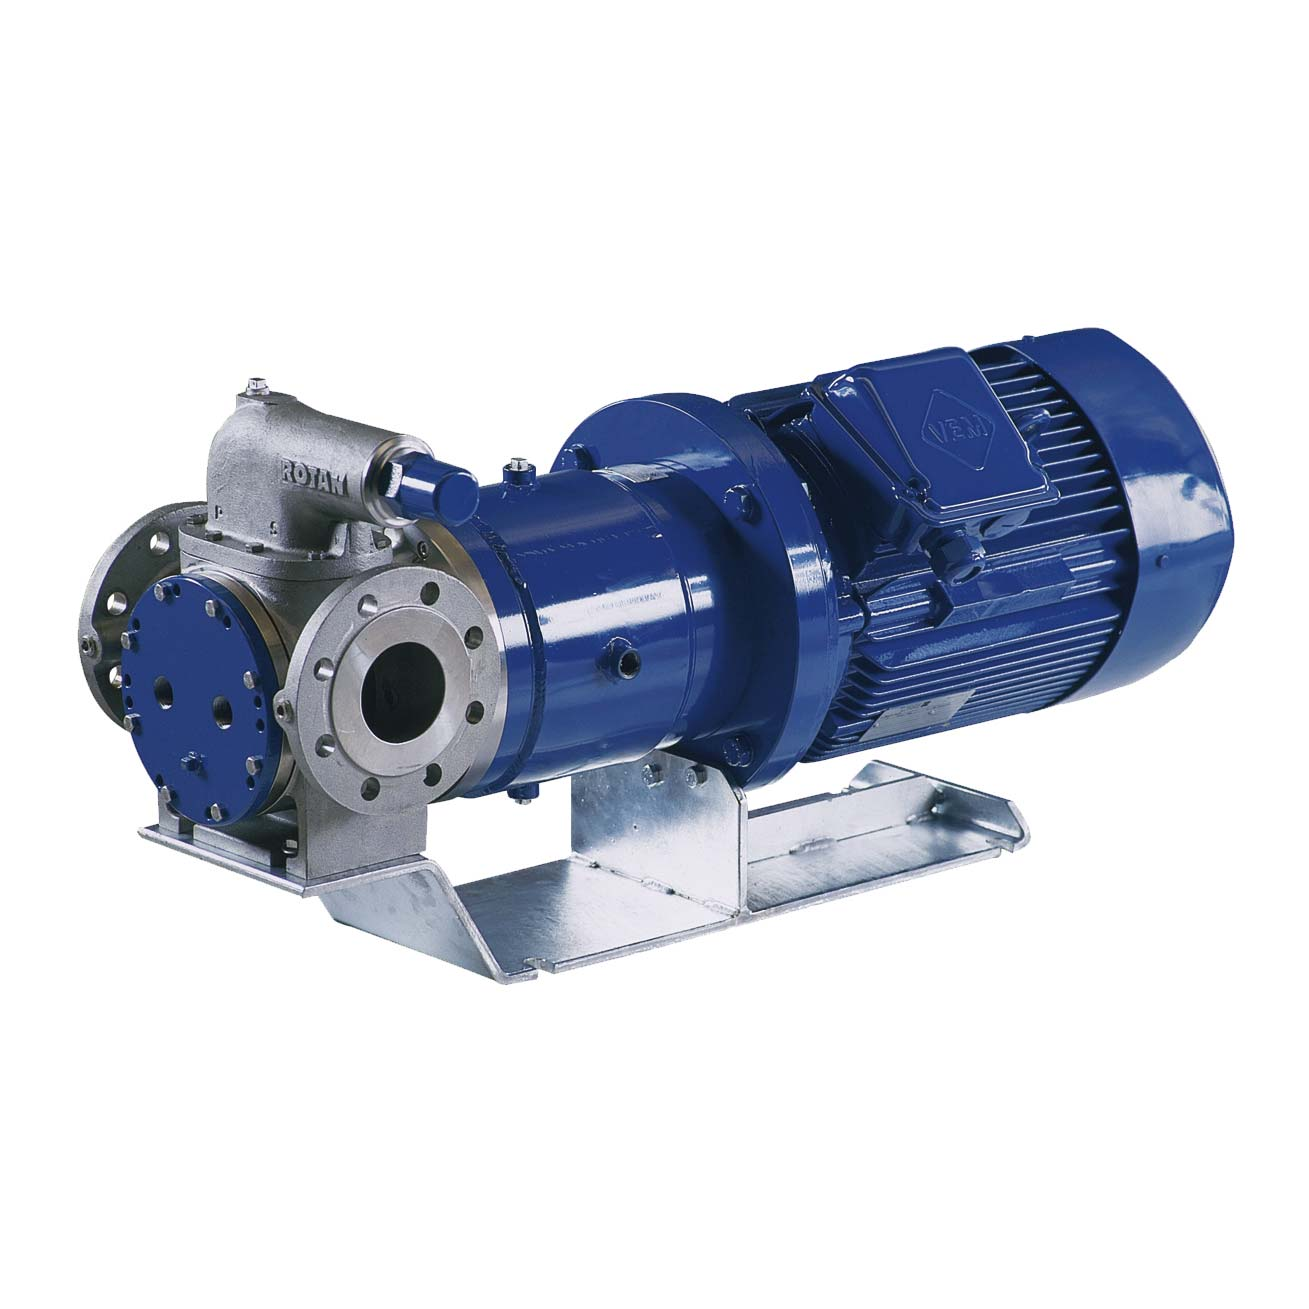 DESMI ROTAN MAGNETIC DRIVE INTERNAL GEAR PUMPS